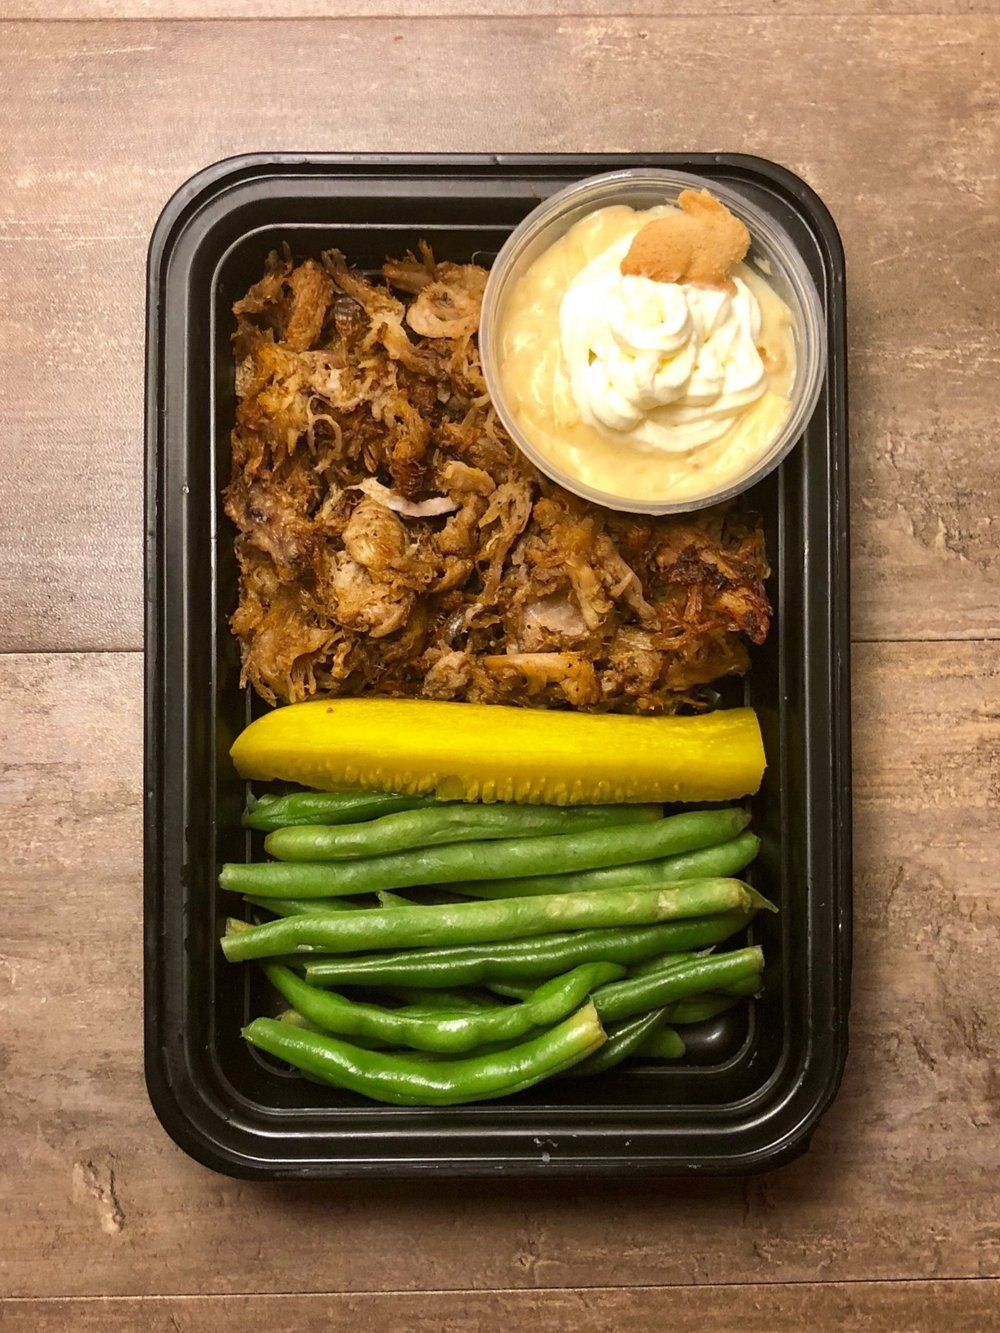 Pulled Pork with Green Beans and Banana Pudding